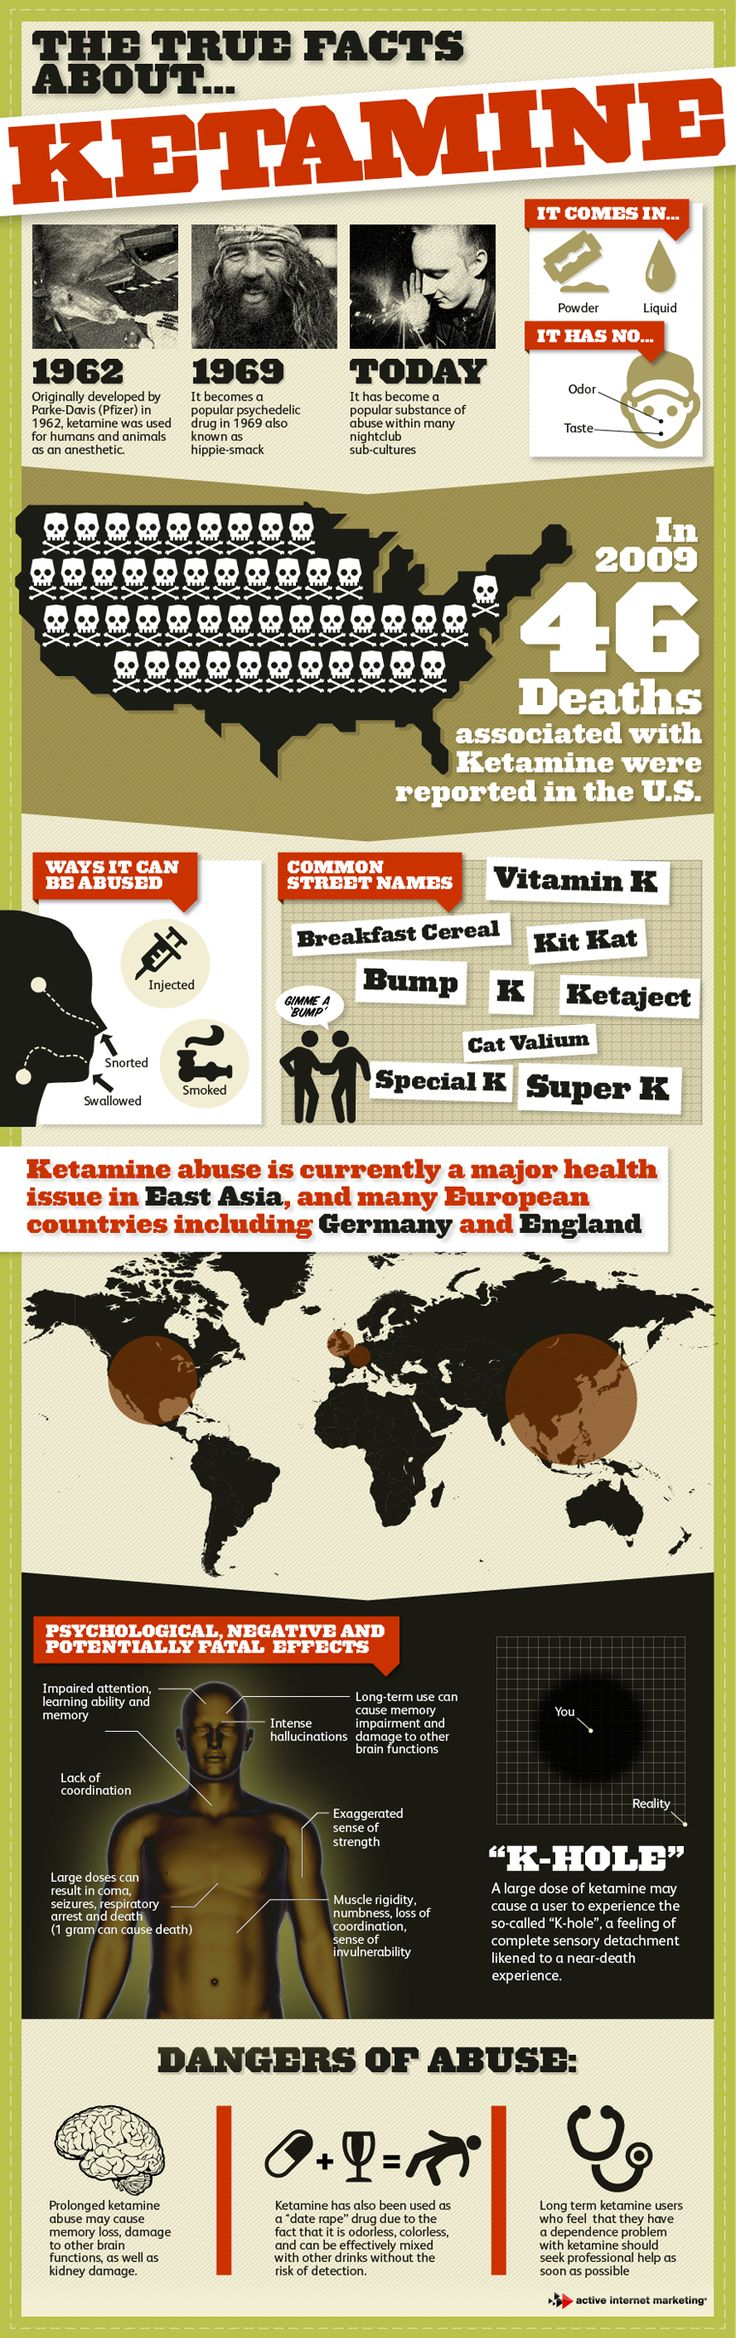 Substances that are originally designed for medical use are sometimes misused for recreational purposes. Ketamine is a synthetic substance that is abused by the public for recreational purposes. While ketamine is legally used by doctors, it is illegal when used recreationally. #drug #infographic - Click for more information and a way to get help.